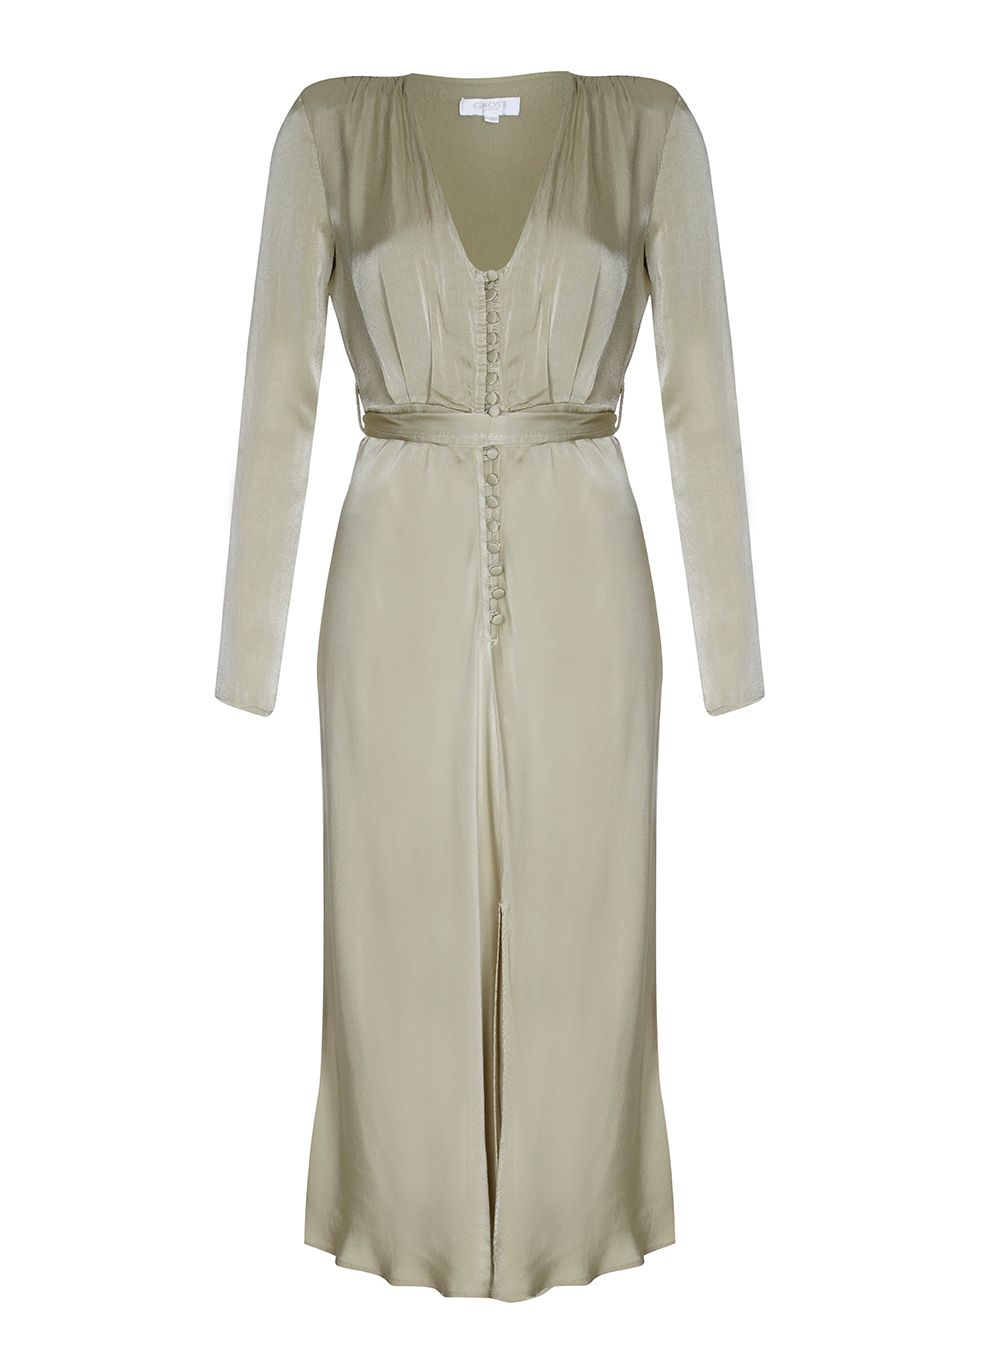 1940s Evening, Prom, Party, Cocktail Dresses & Ball Gowns Ghost Meryl Dress Lint Green £165.00 AT vintagedancer.com